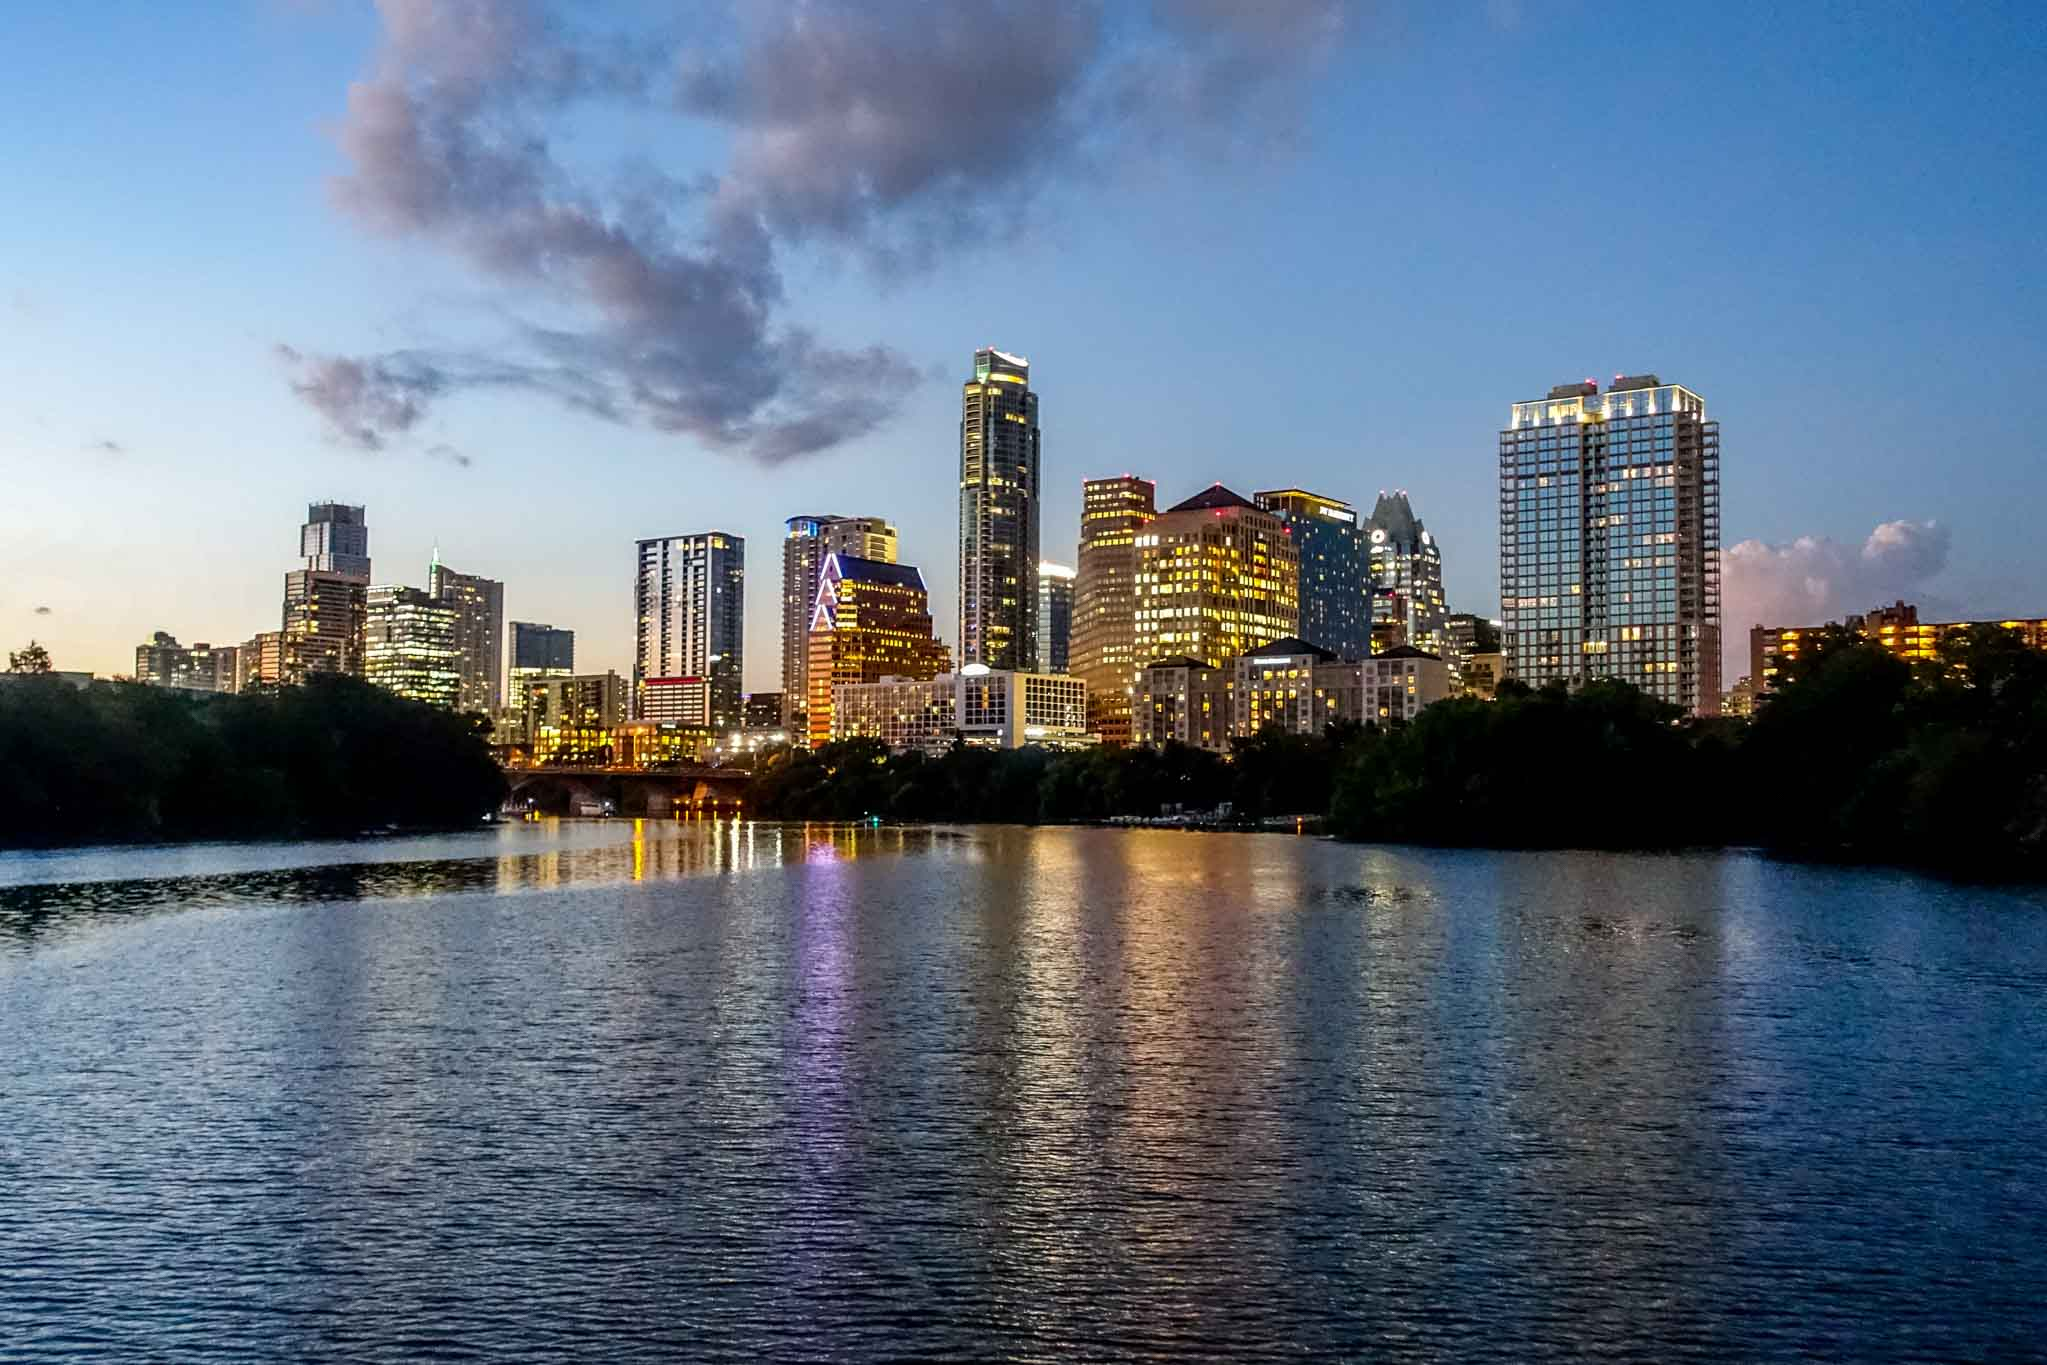 From visiting Lady Bird Lake to seeing the Congress Ave Bridge bats, there are lots of fun things to do in Austin Texas